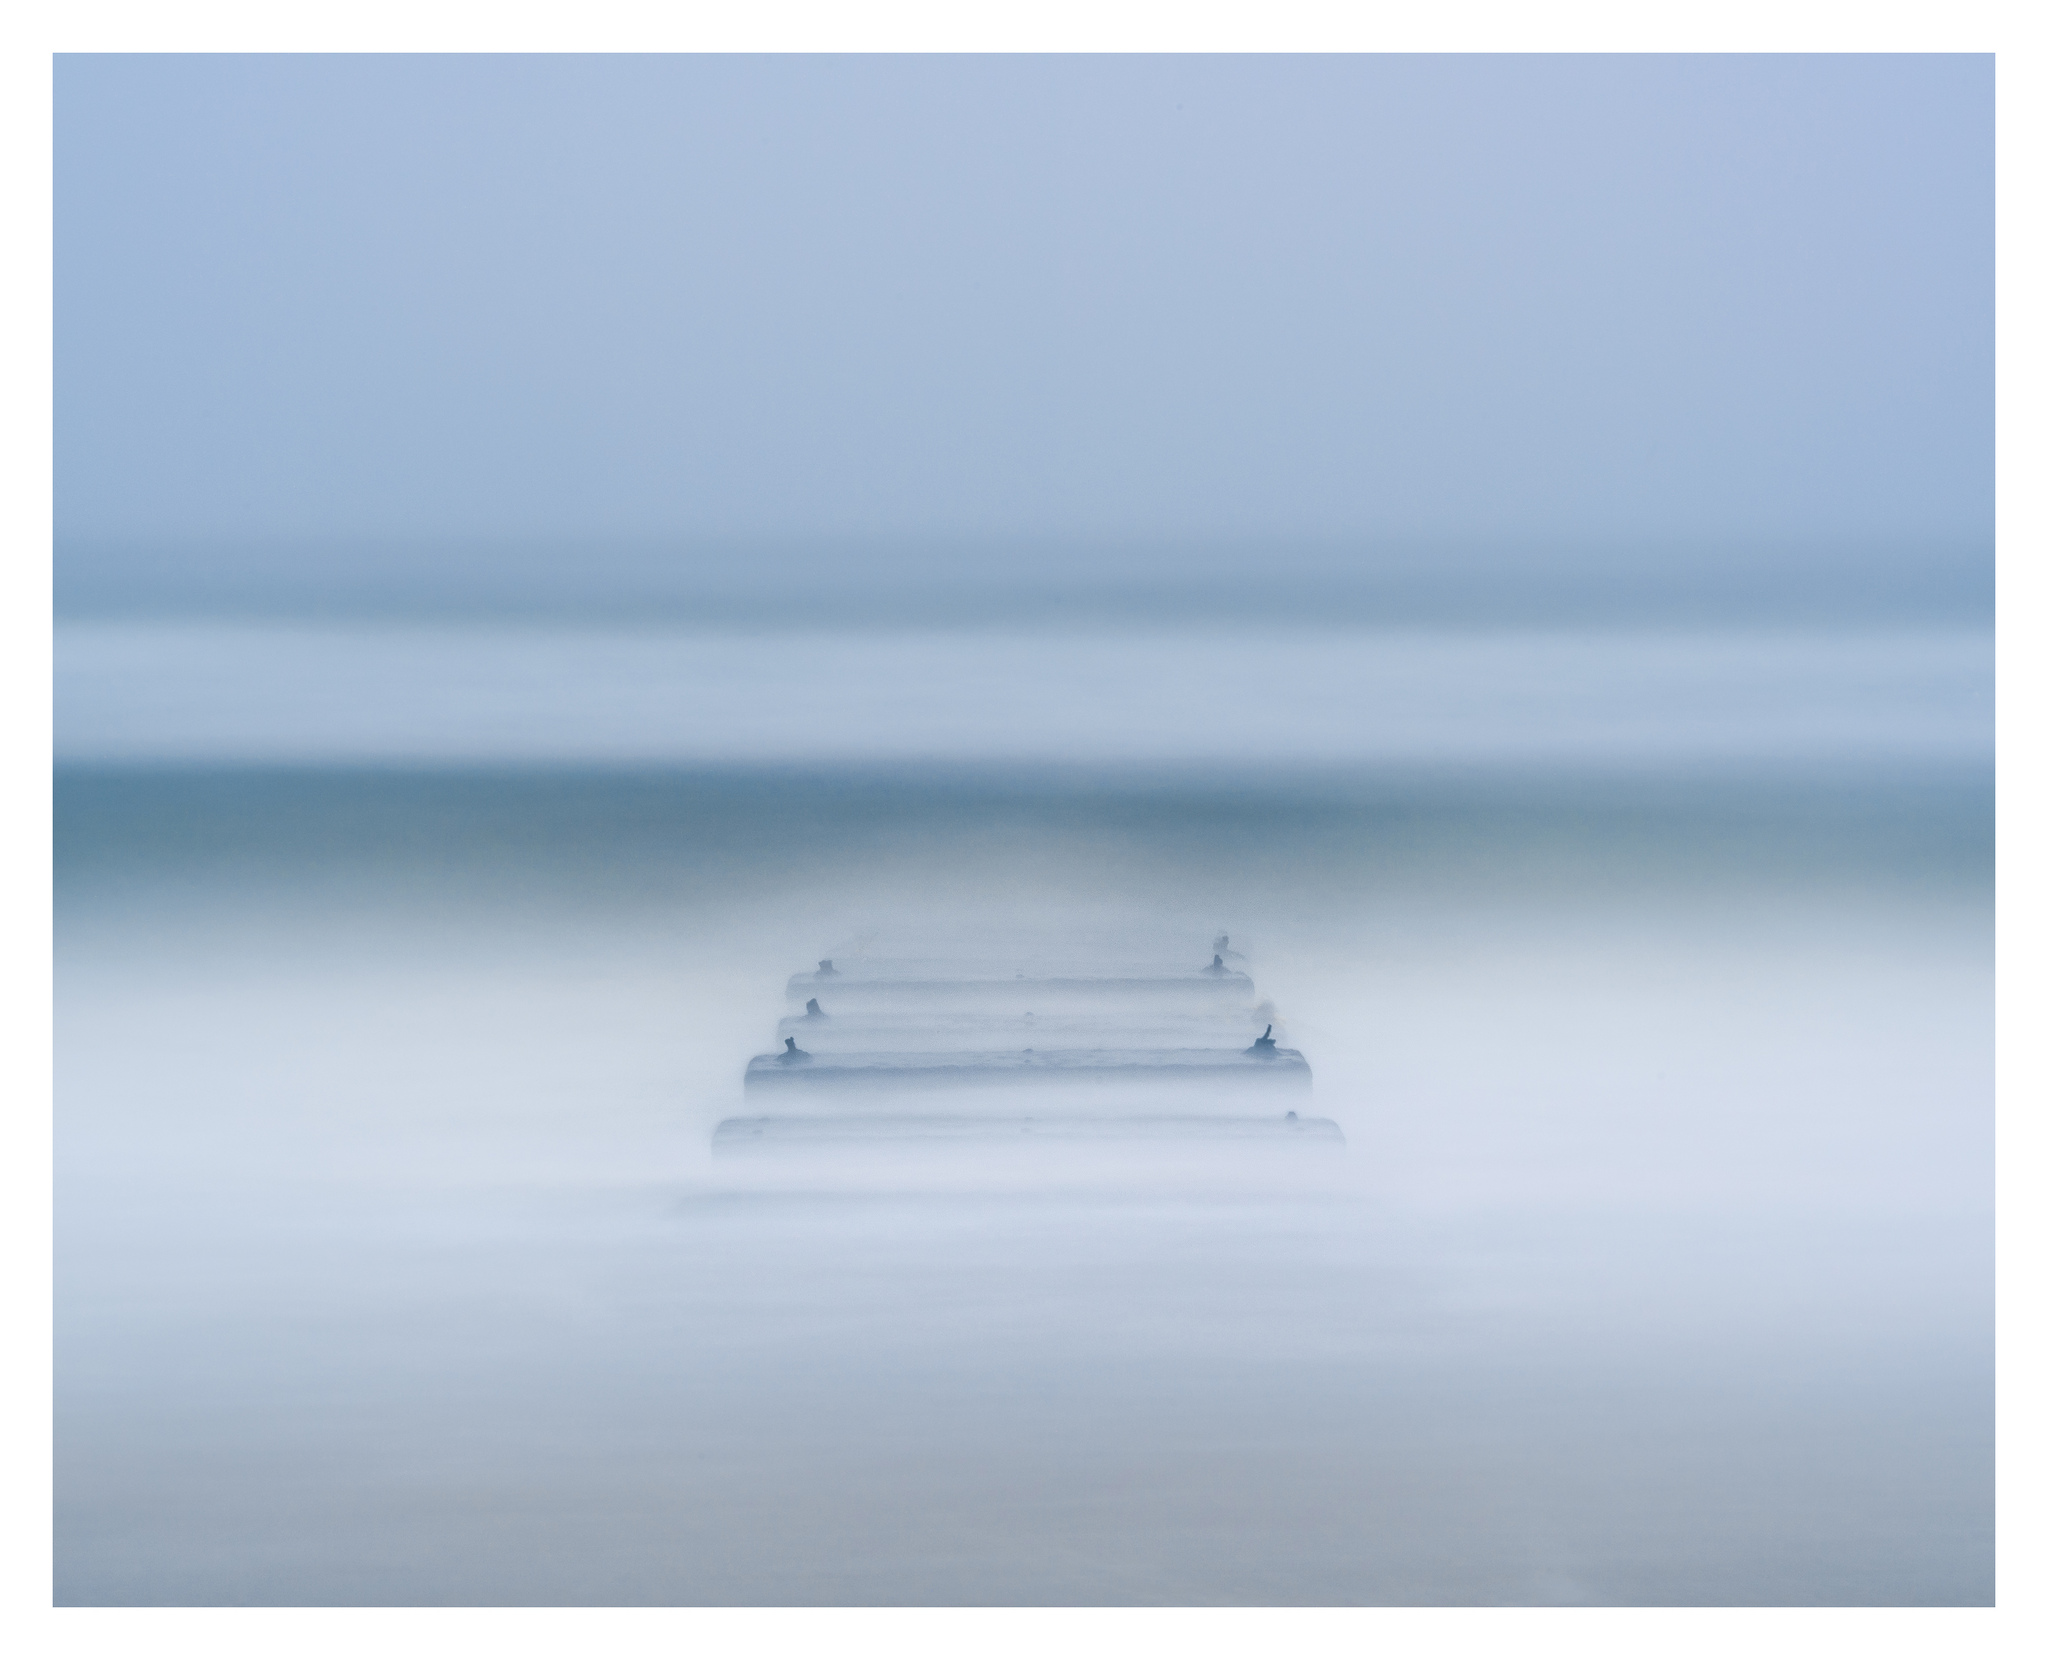 Into the Blue near Nags Head Fishing Pier - Nikon D750 w/80-400mm lens, long exposure with tide coming in.